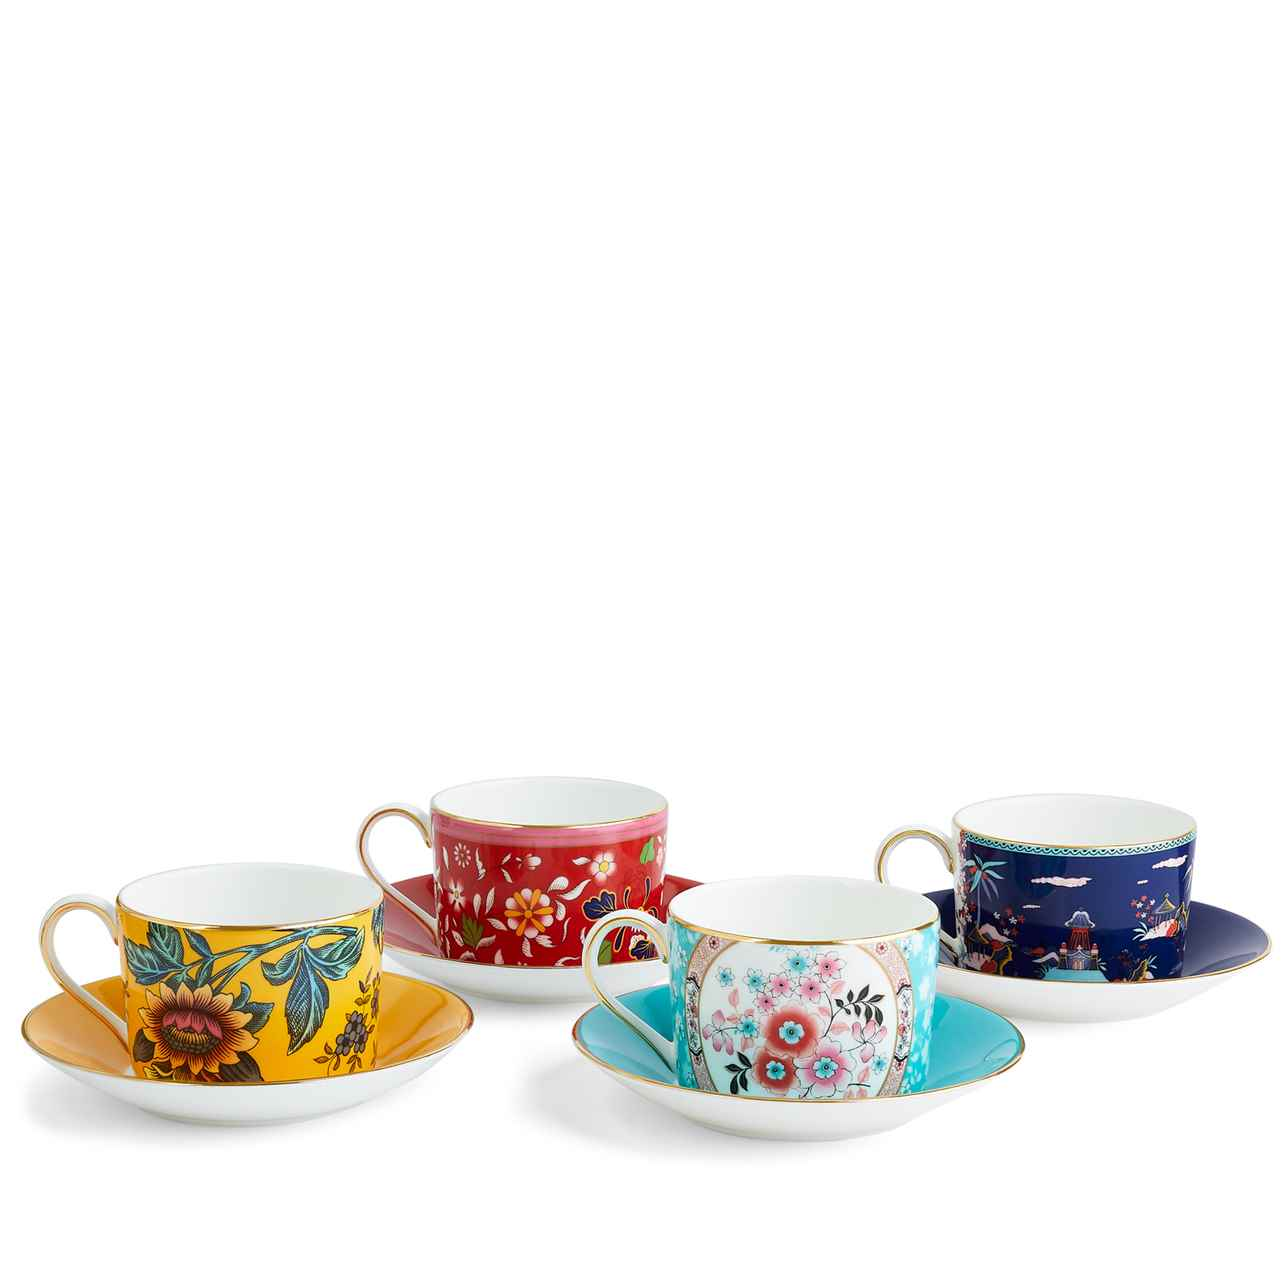 Wonderlust Teacup & Saucer, Set of 4